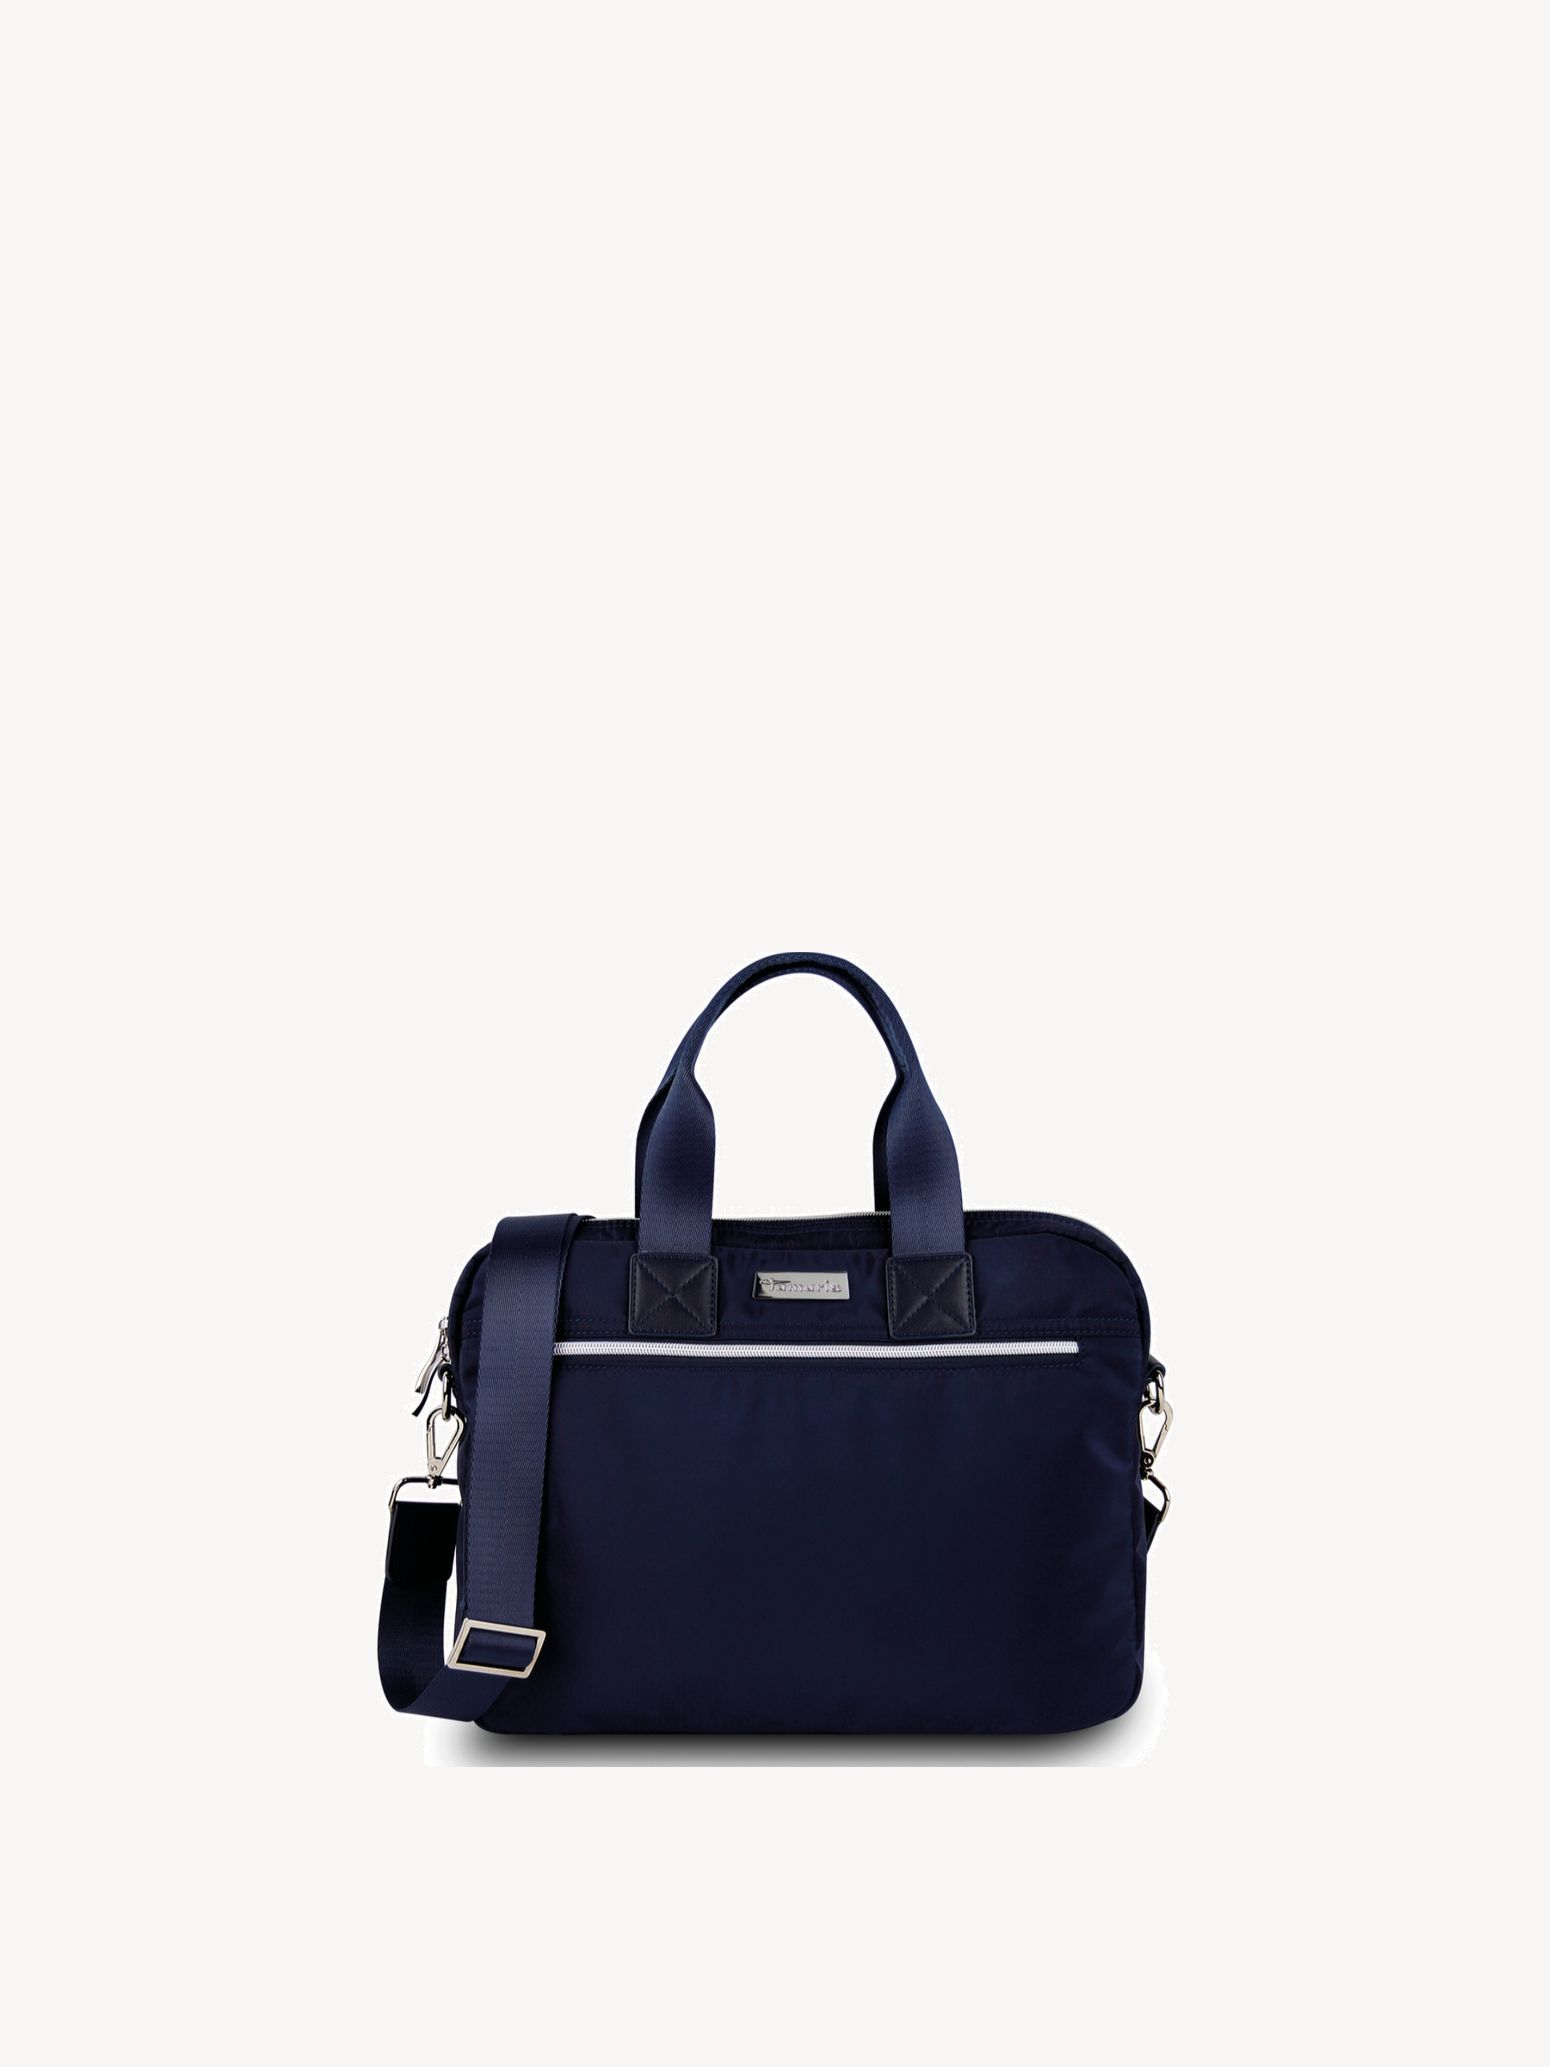 Laptoptas - blauw, navy, hi-res